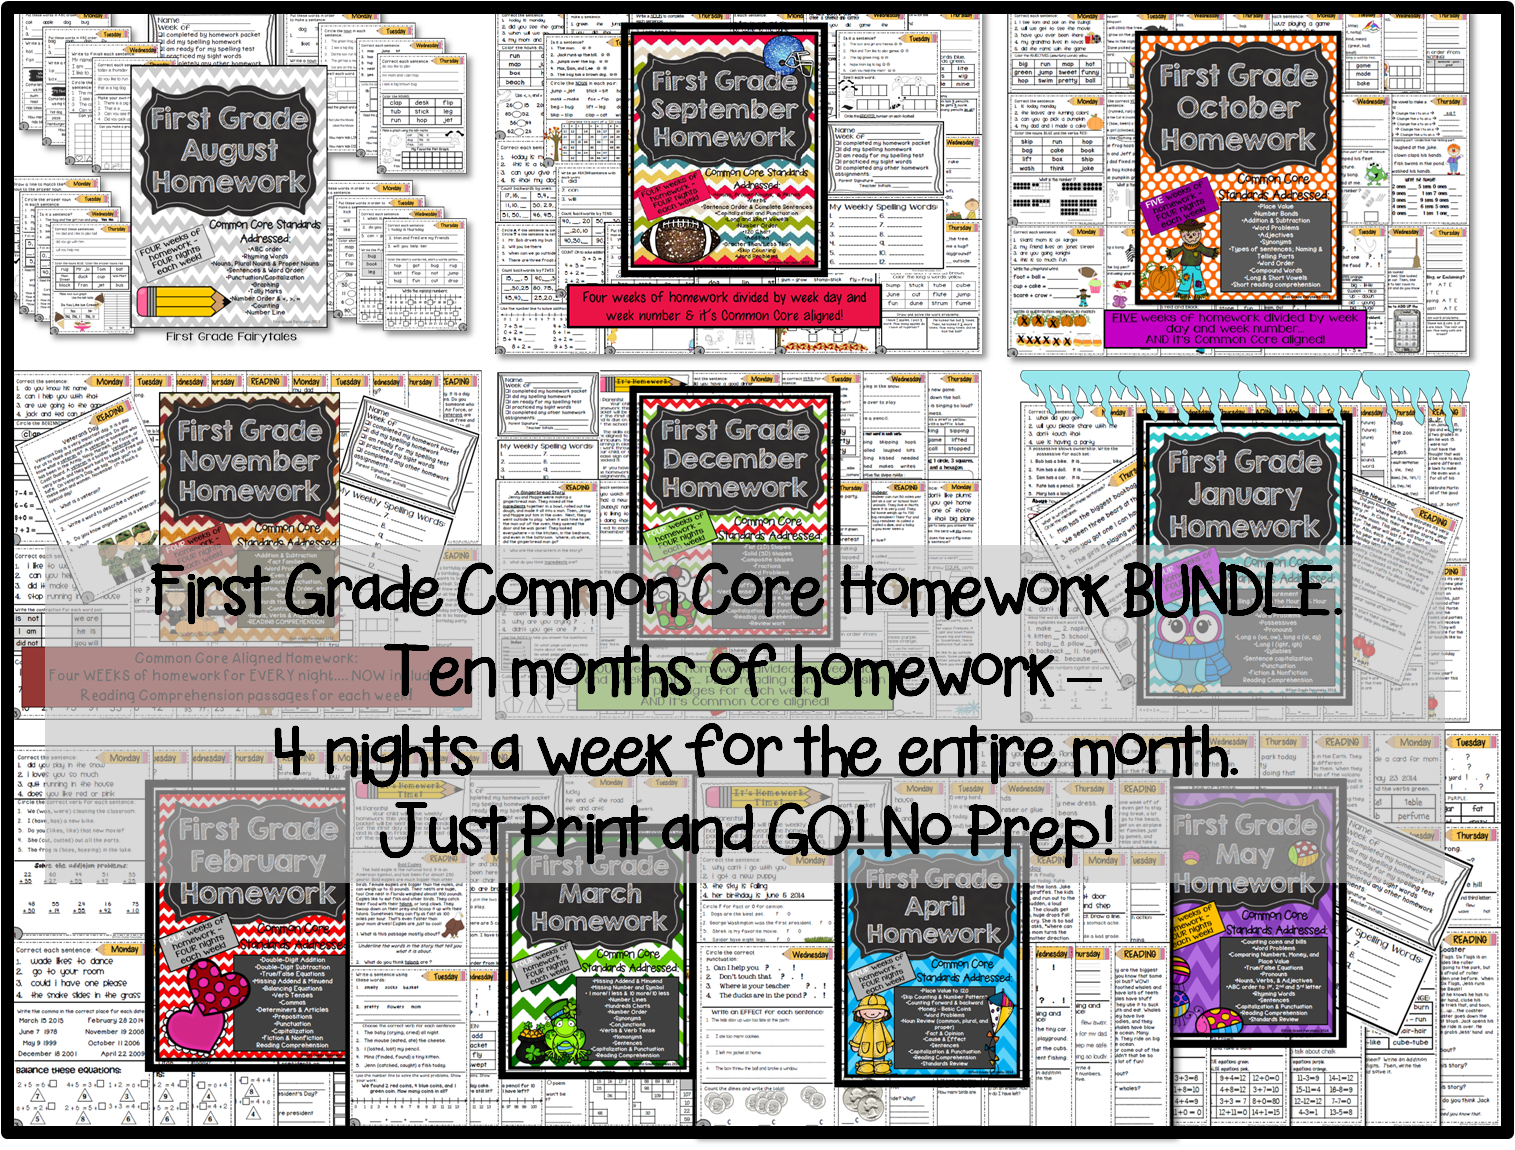 http://www.teacherspayteachers.com/Product/First-Grade-Common-Core-Homework-BUNDLE-1230833